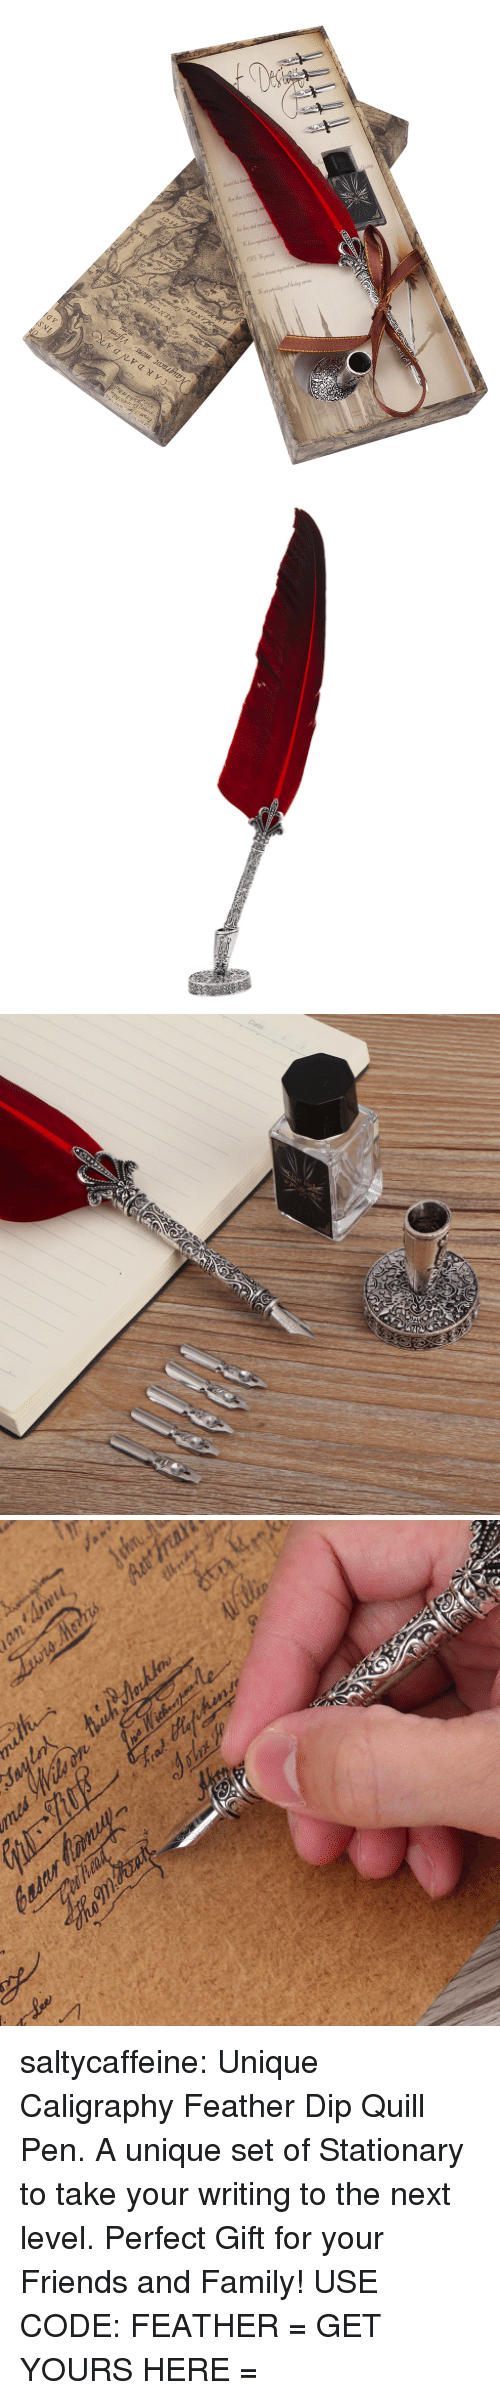 Family, Friends, and Target: saltycaffeine: Unique Caligraphy Feather Dip Quill Pen. A unique set of Stationary to take your writing to the next level. Perfect Gift for your Friends and Family! USE CODE: FEATHER = GET YOURS HERE =